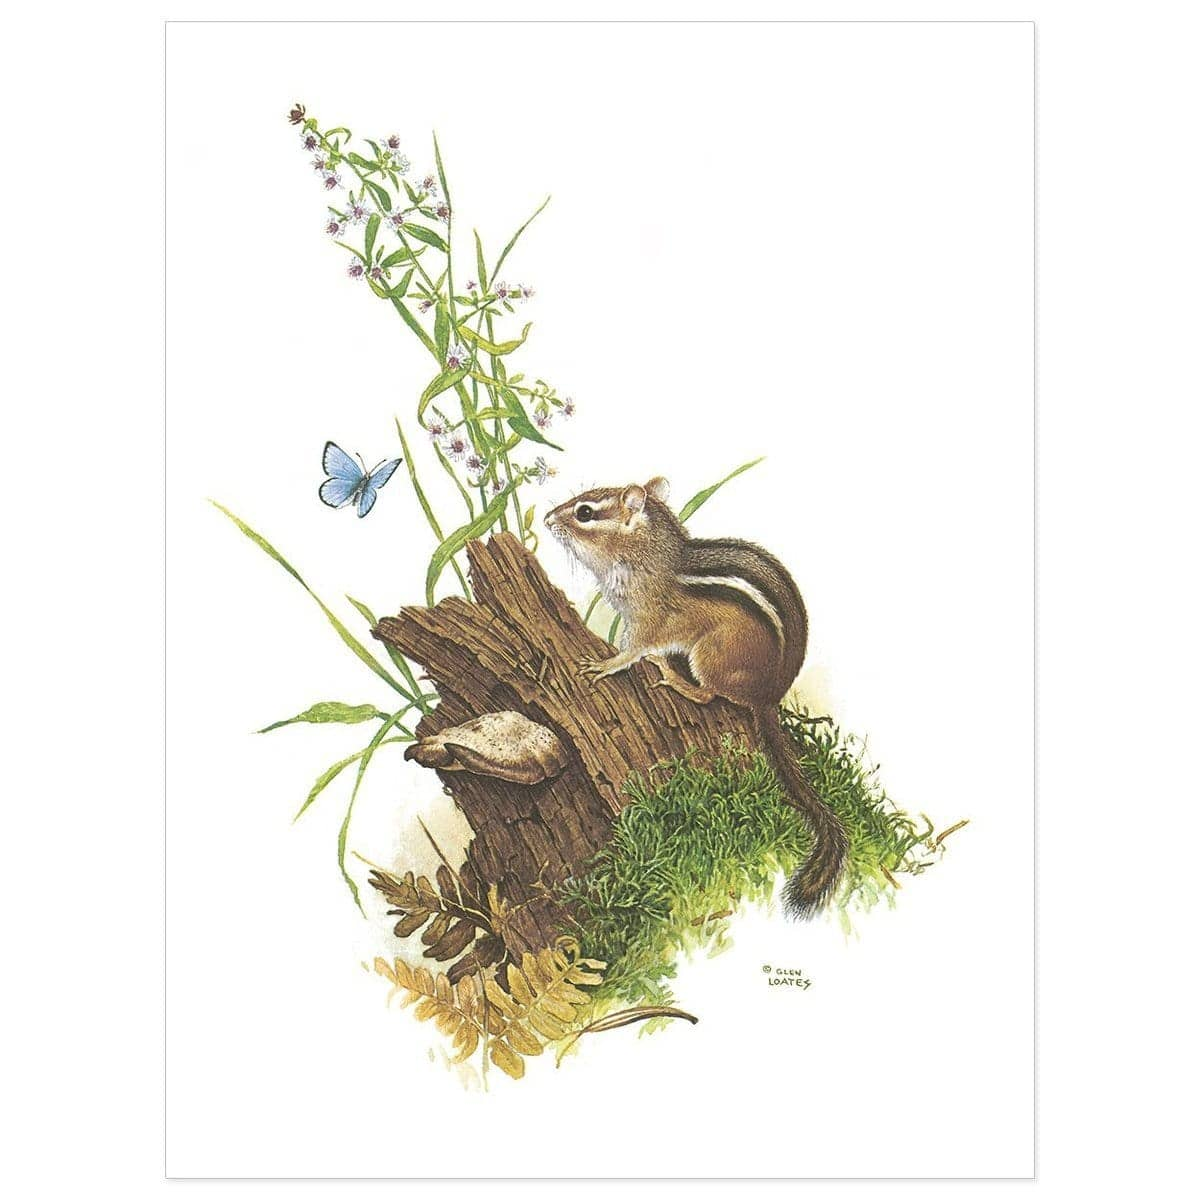 Chipmunk And Woodland Blue Butterfly - Art Print by Glen Loates from the Glen Loates Store